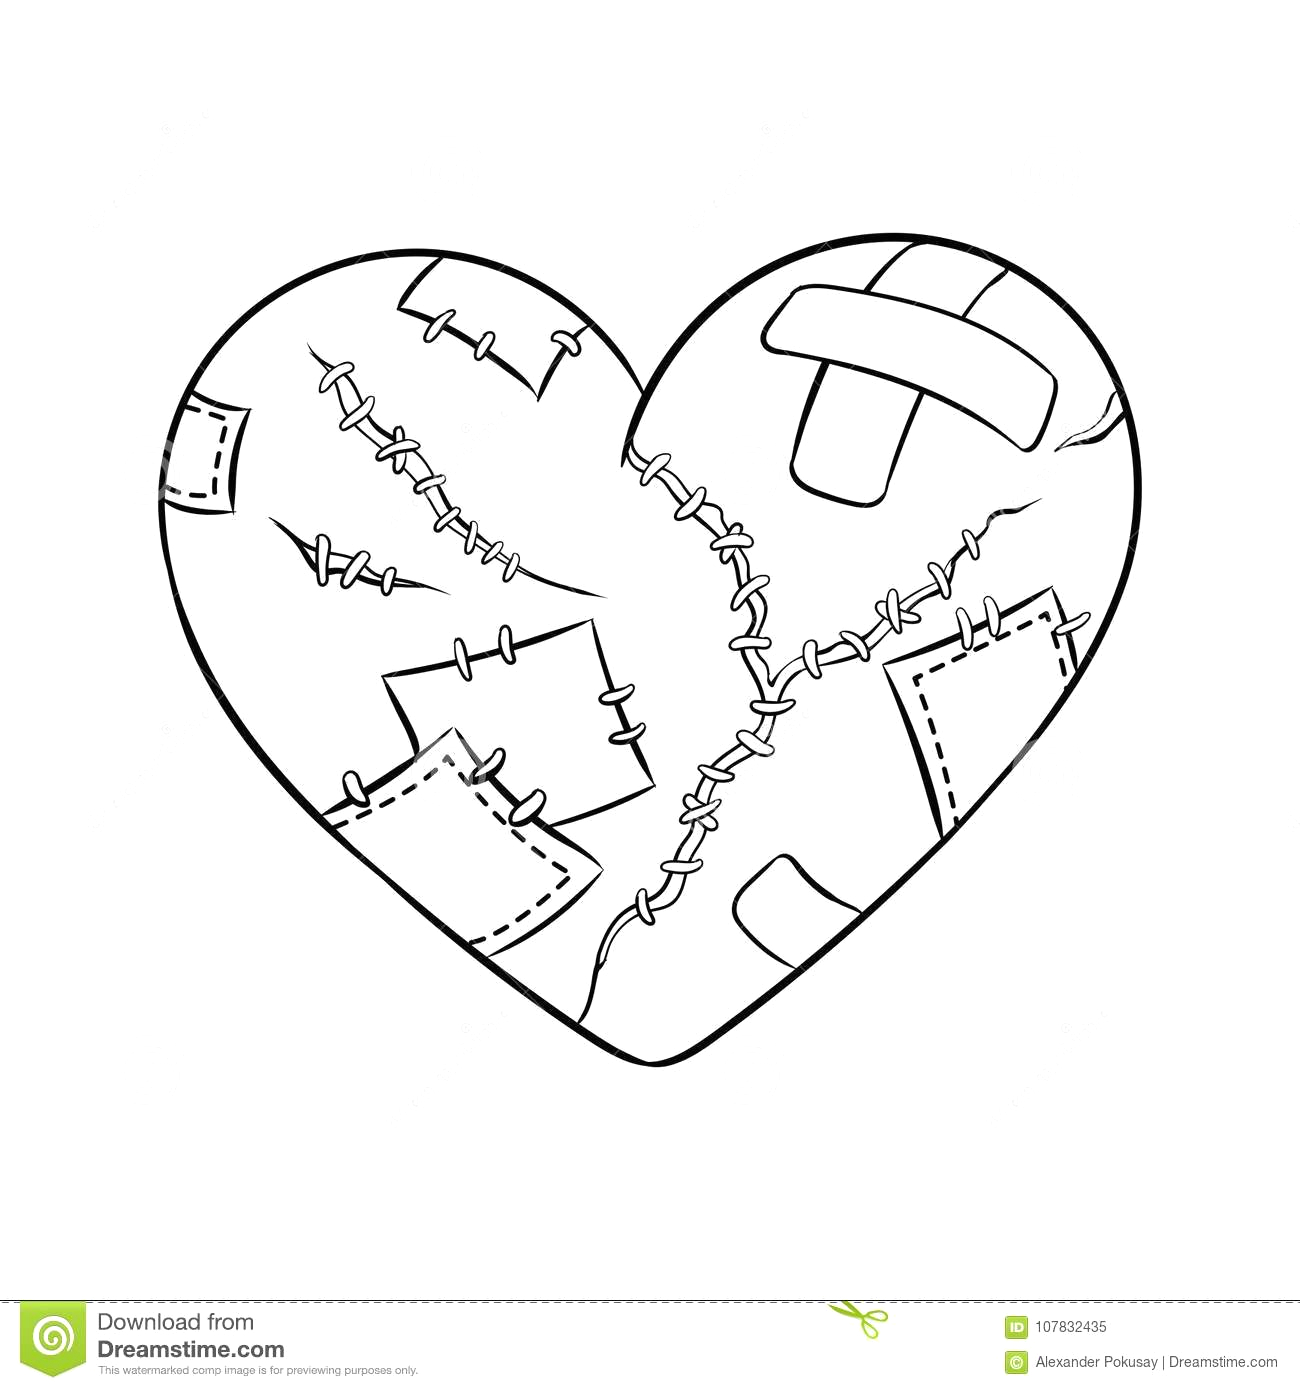 broken heart metaphor coloring vector illustration isolated image white background ic book style imitation broken heart image